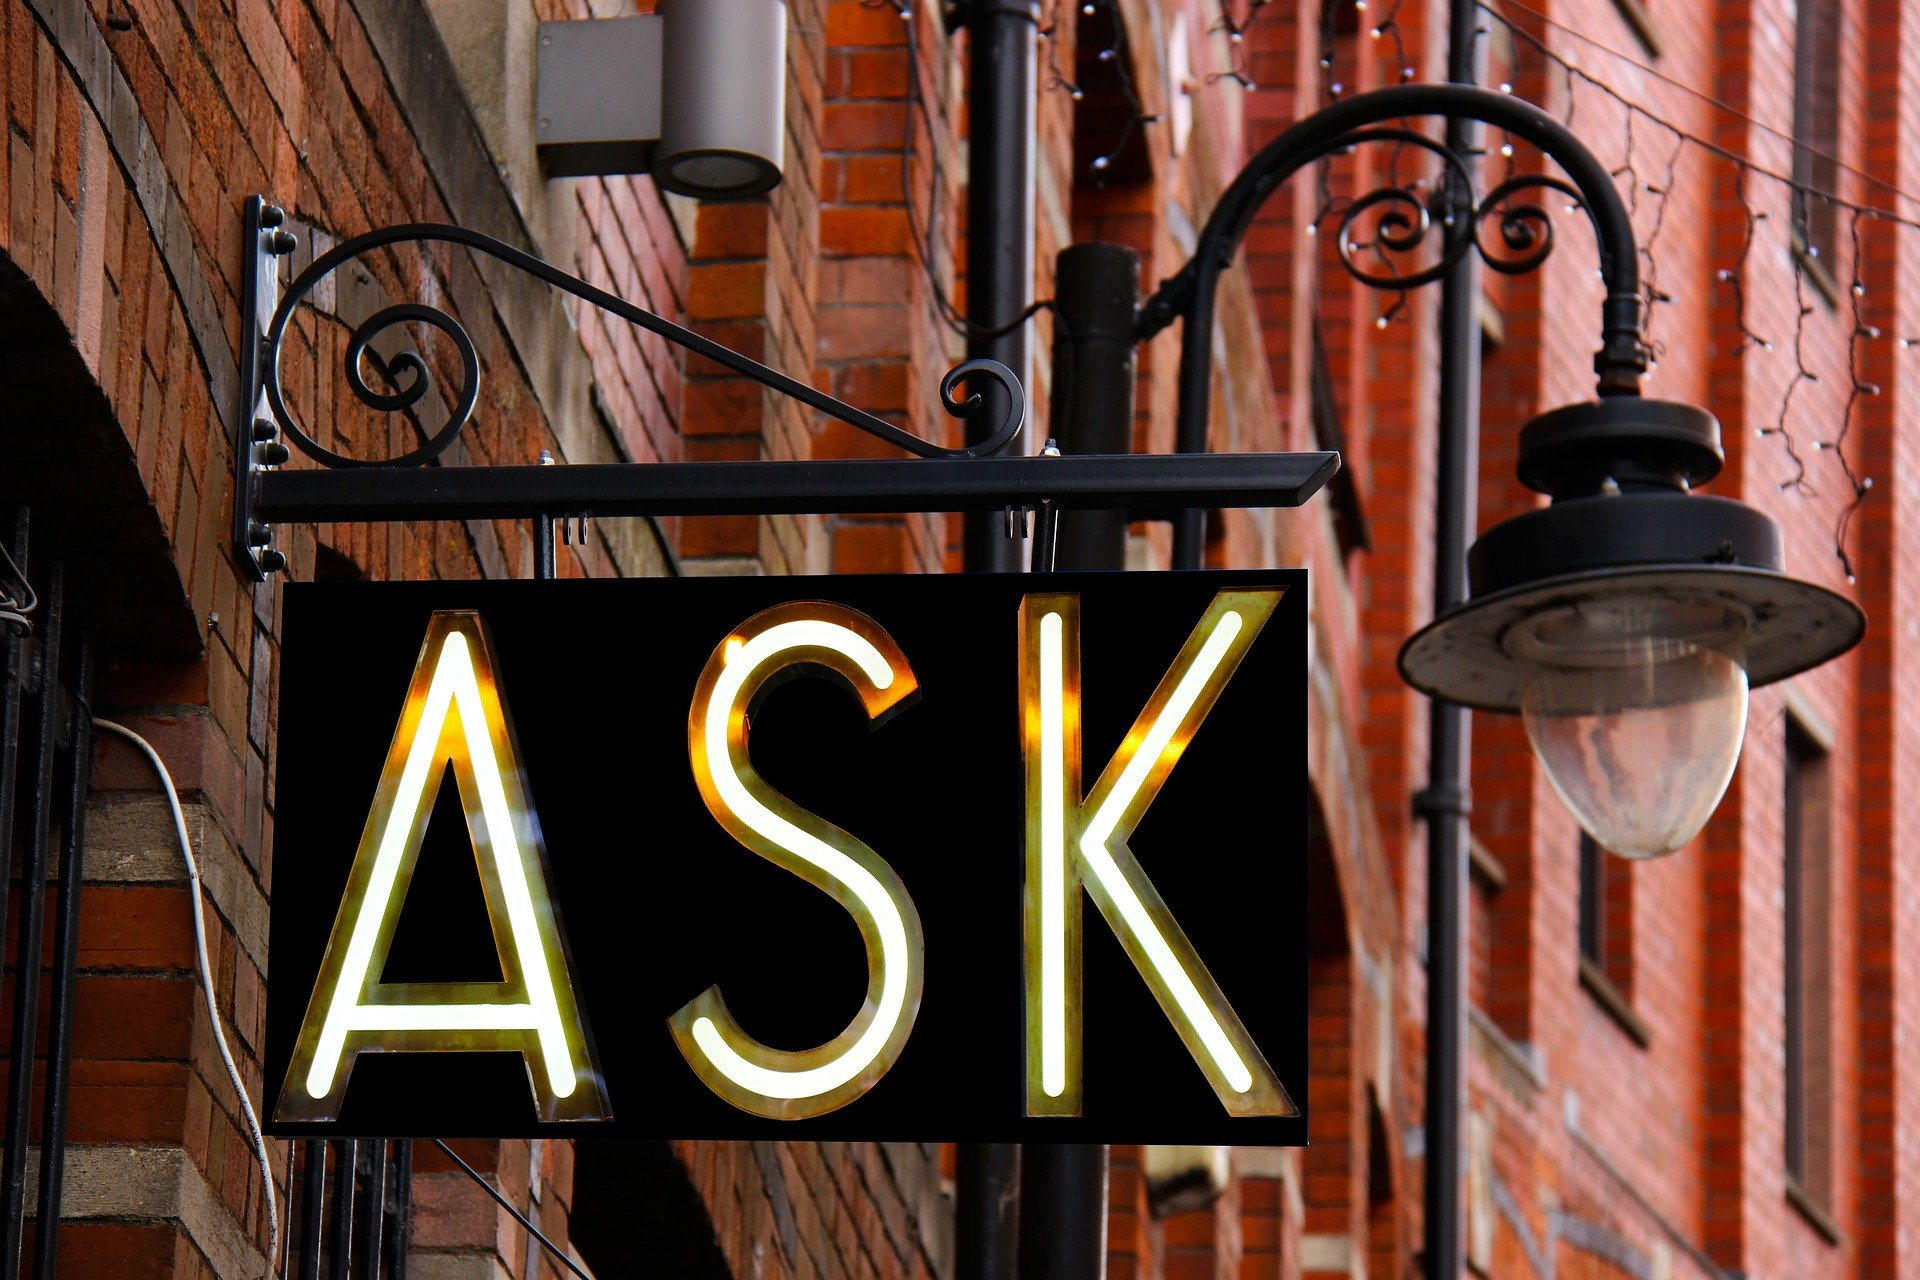 """A light-up sign outside a brick building reads """"Ask."""""""